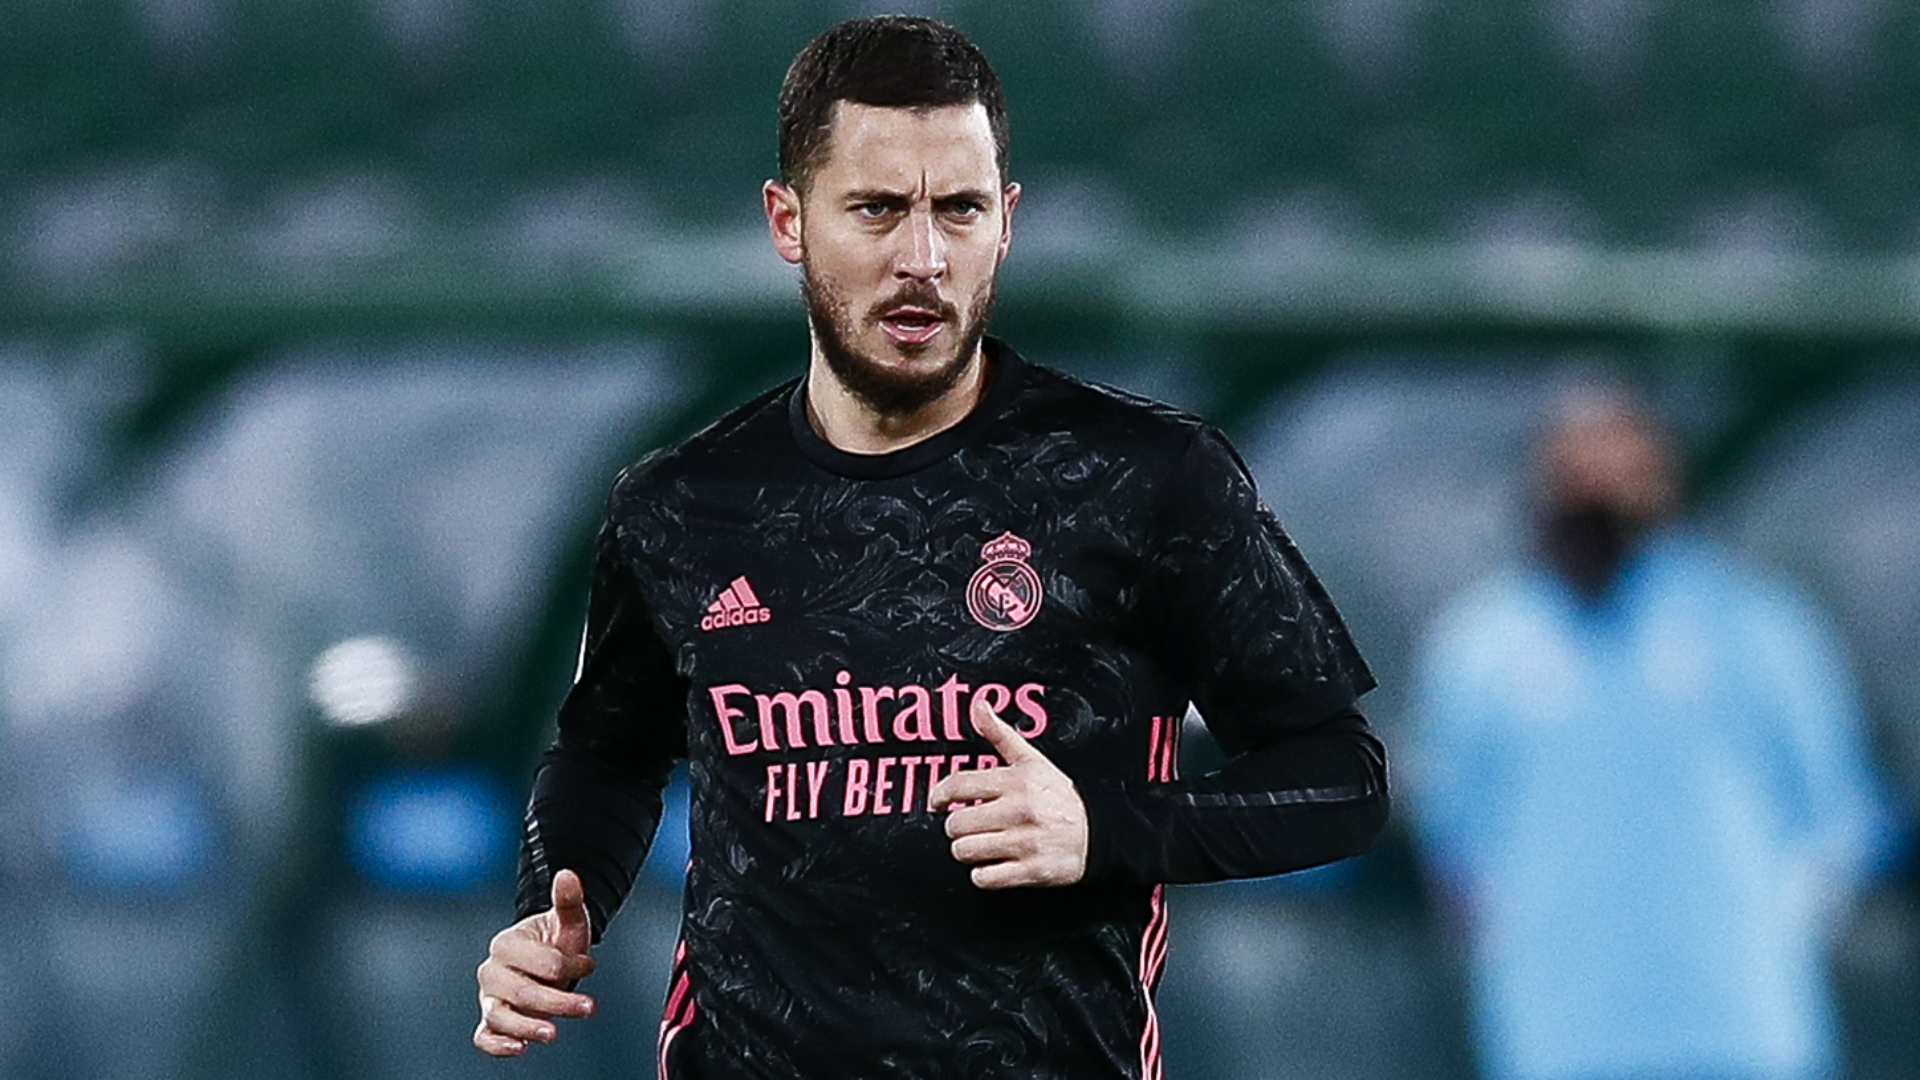 Madrid's Hazard needs time to get back to his best, insists Zidane